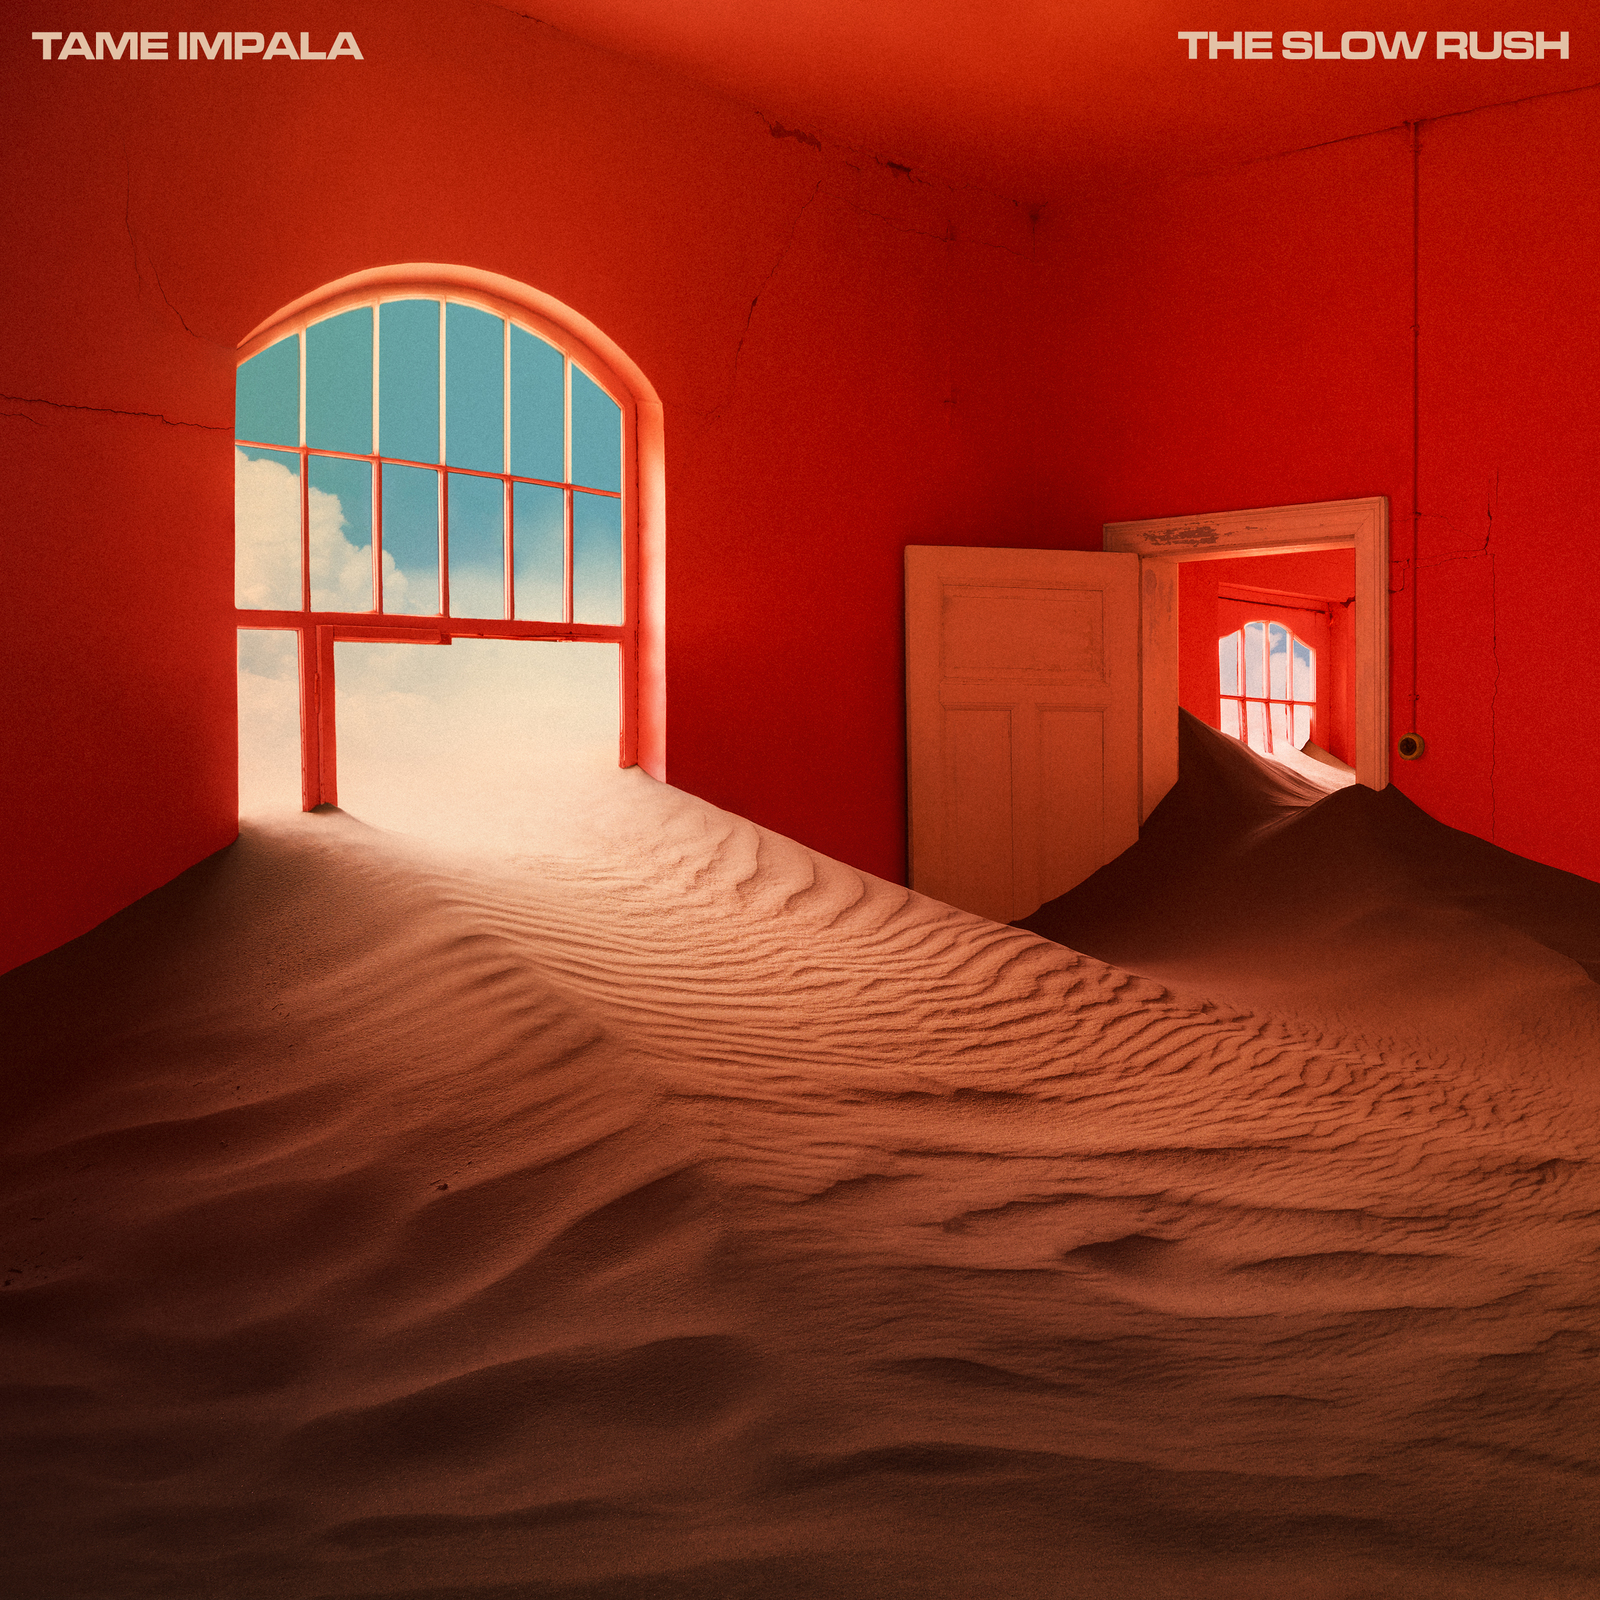 The Slow Rush by Tame Impala image